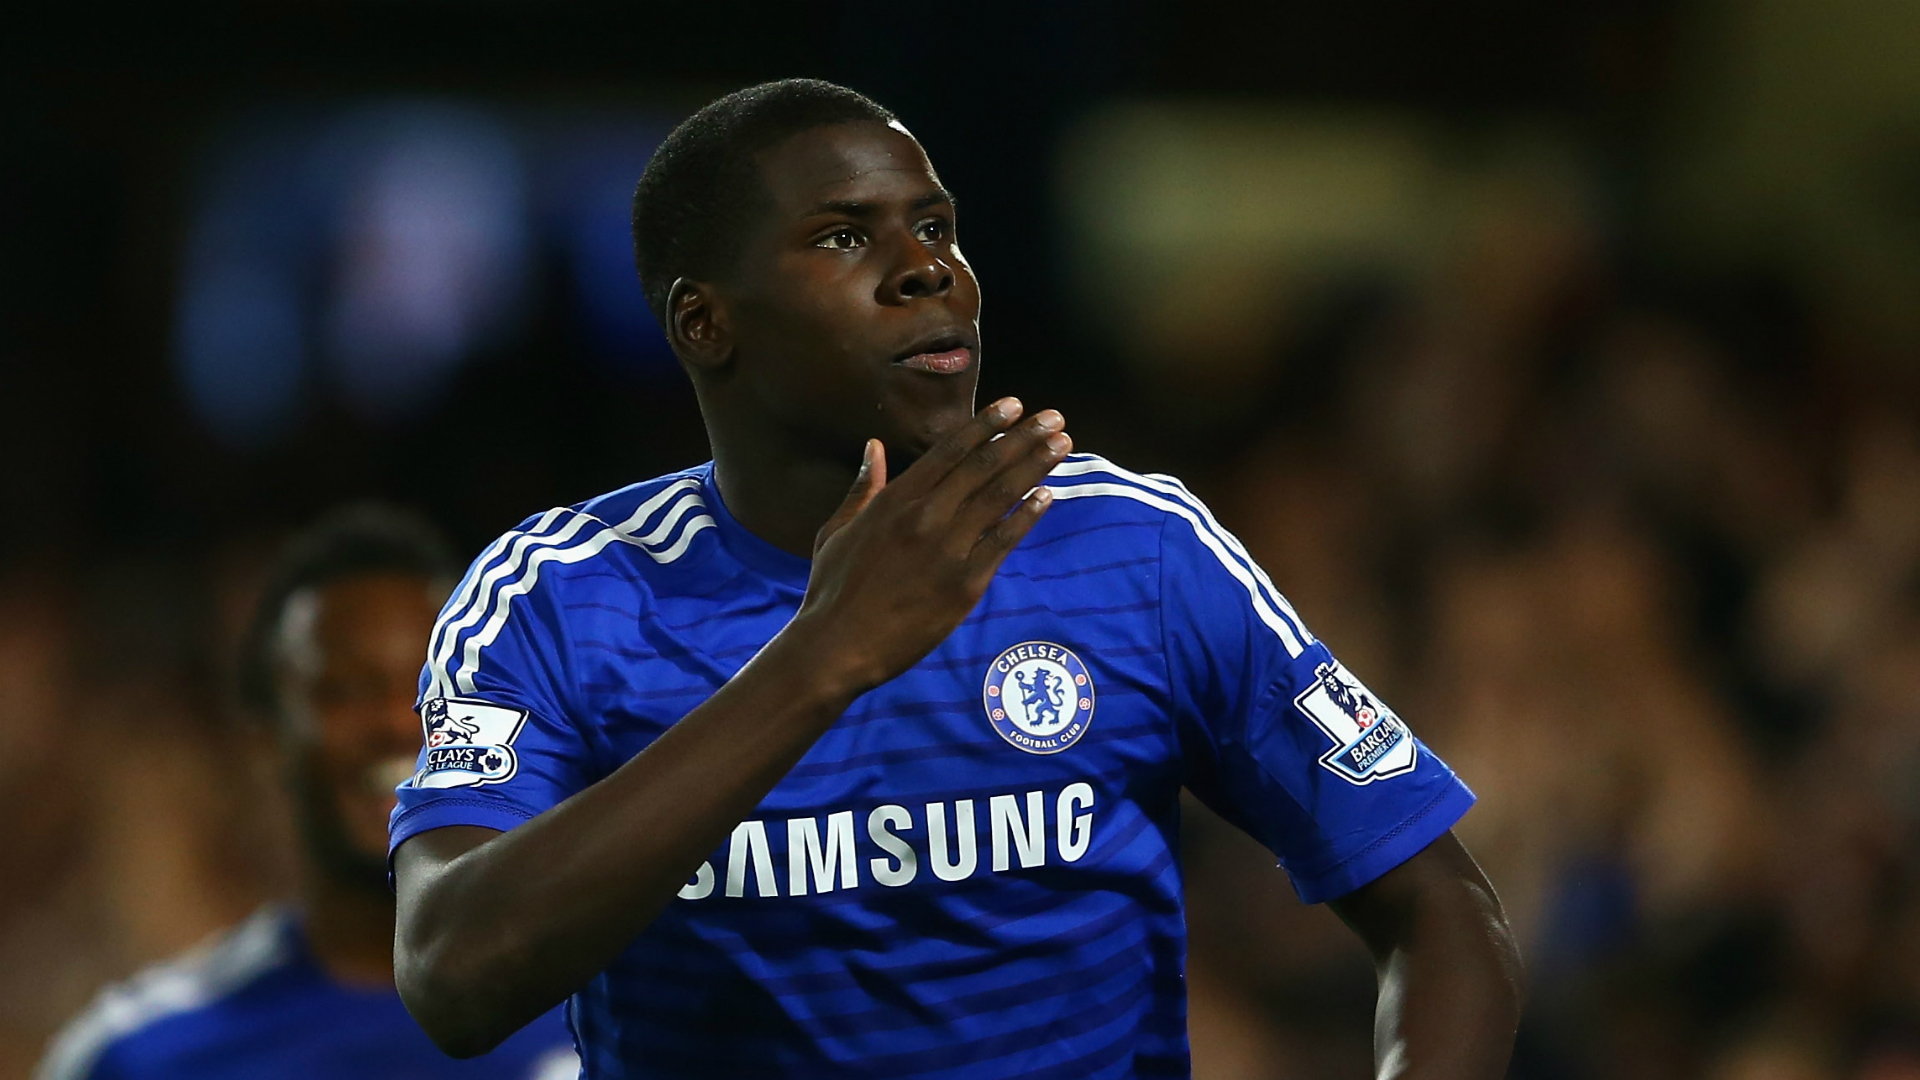 Lampard wants Zouma to stay at Chelsea amid talk of a permanent move to Everton